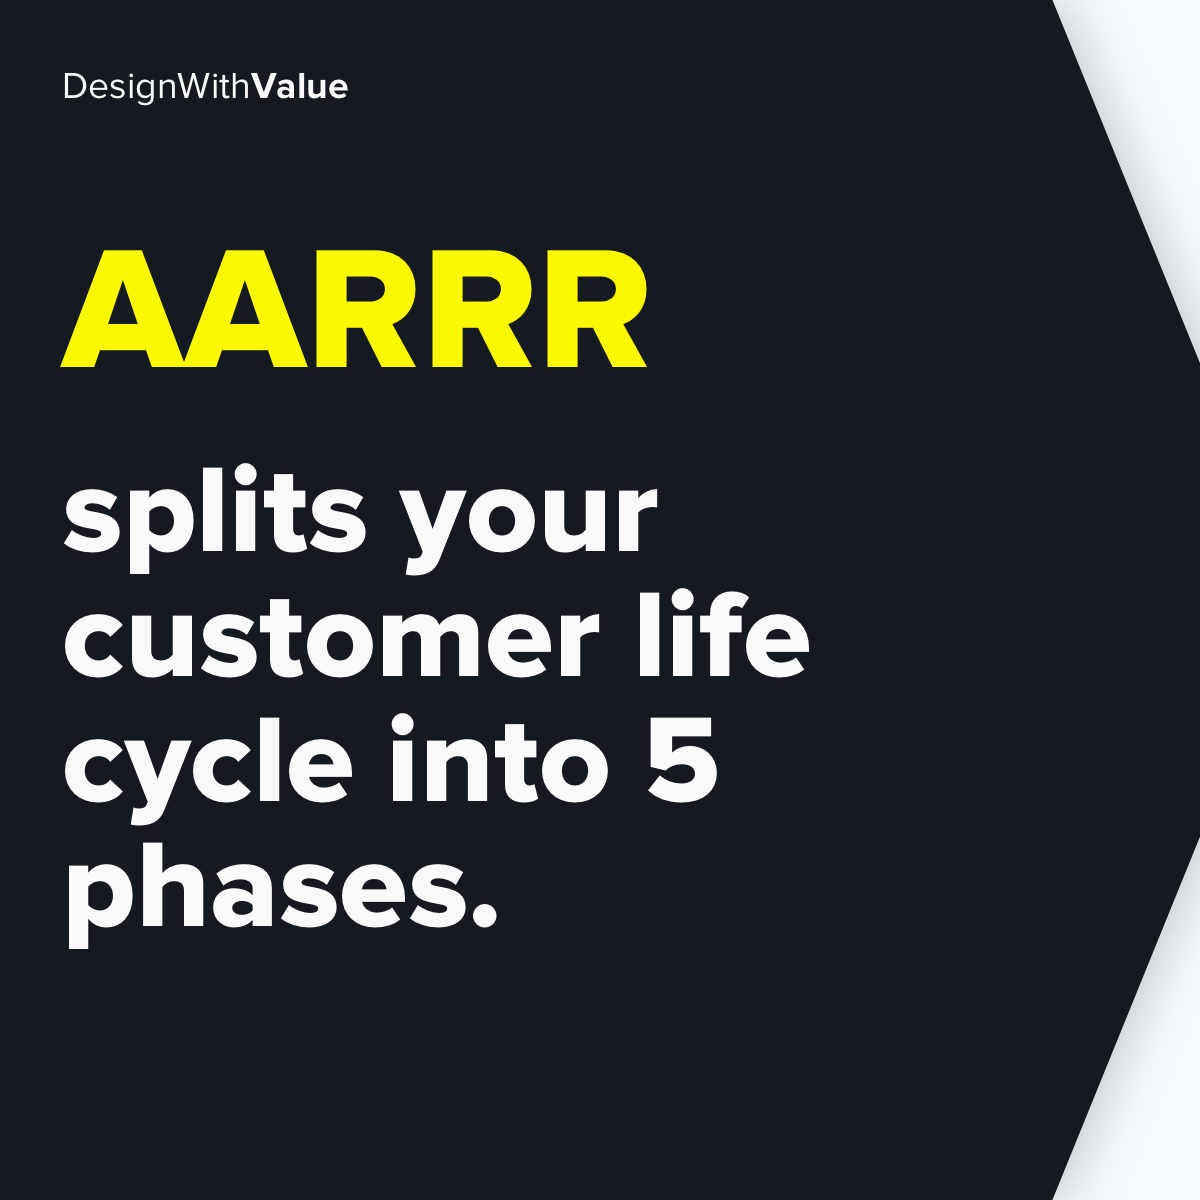 AARRR splits your customer life cycle into 5 phases.